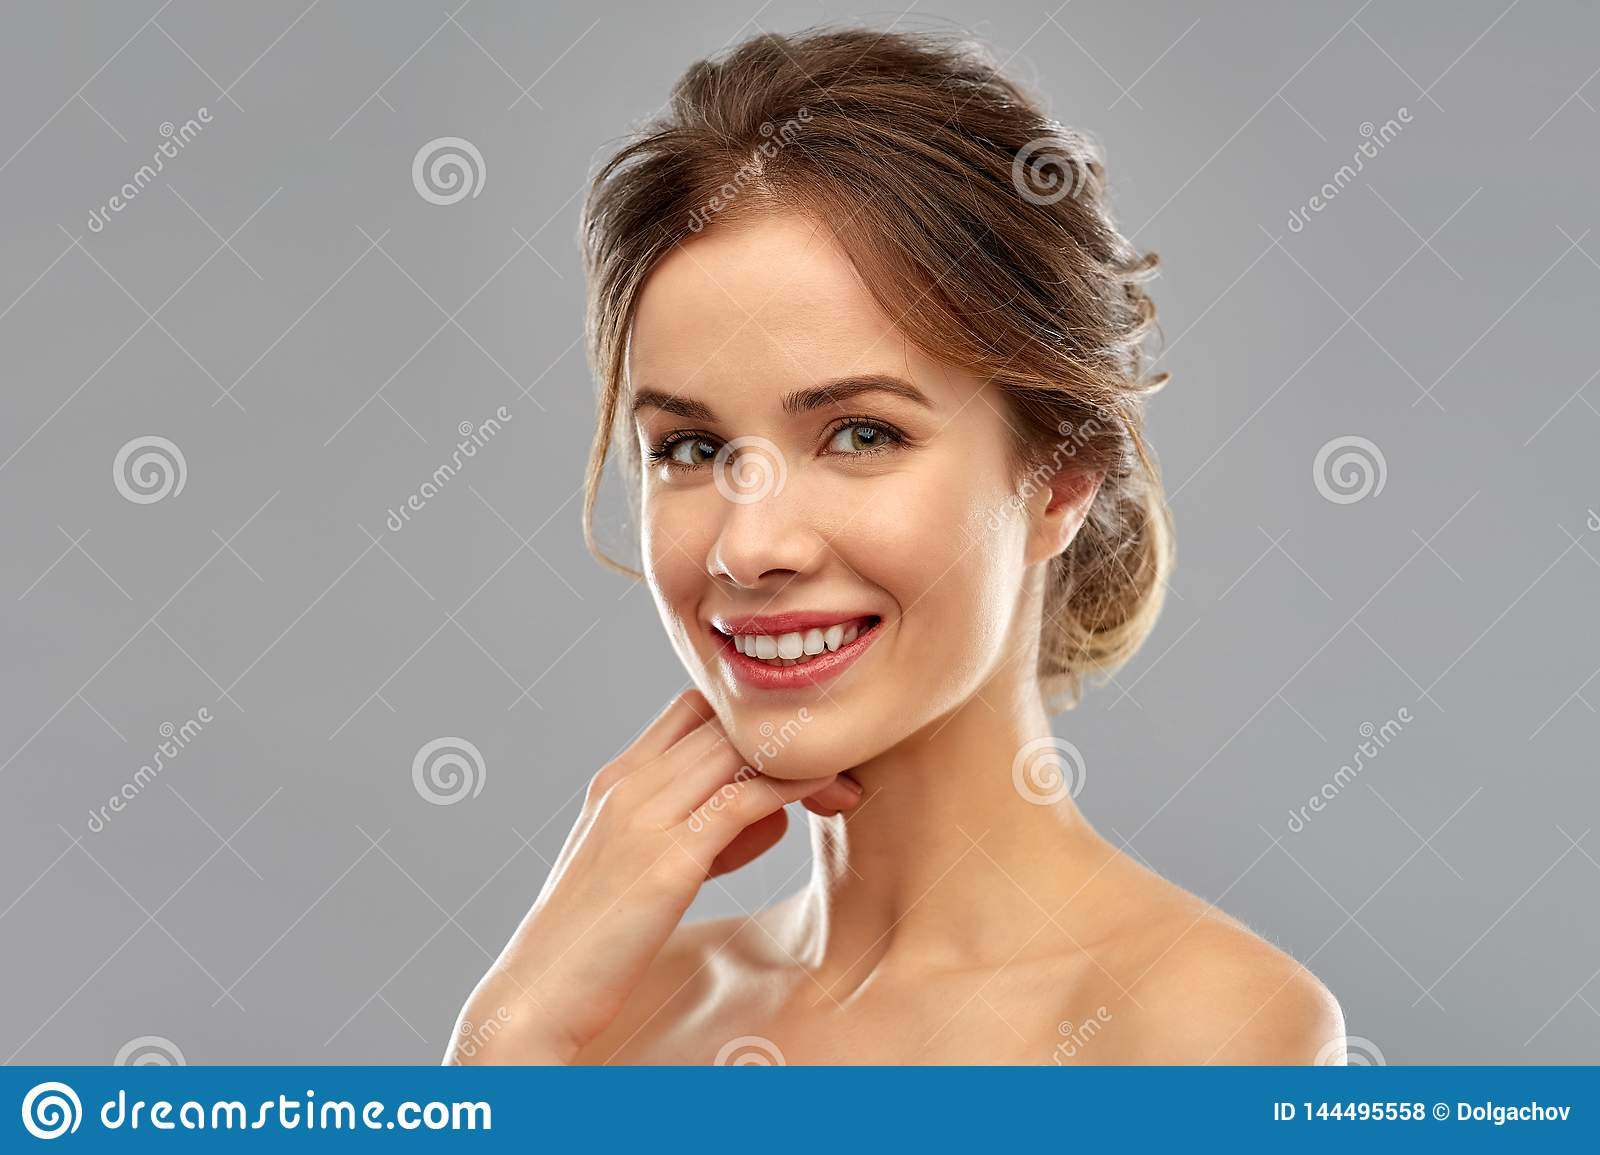 Smiling young woman over grey background